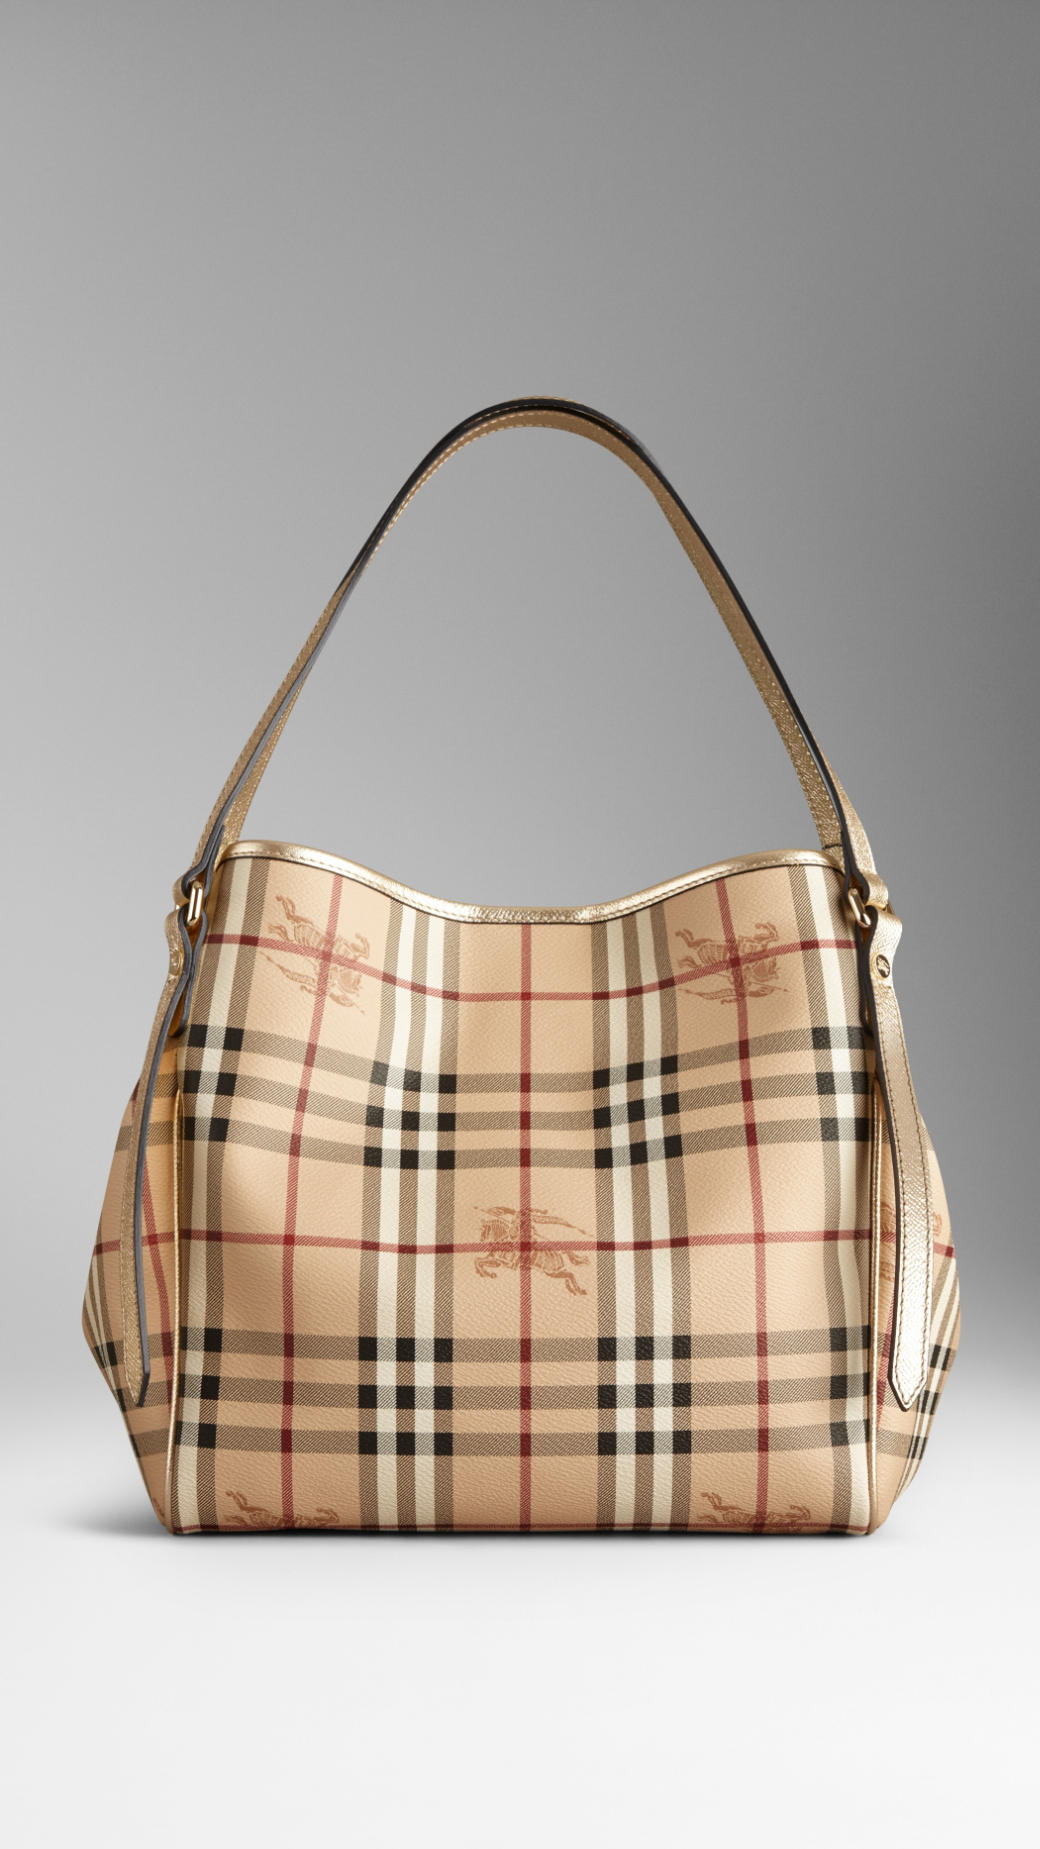 Burberry Small Haymarket Check Patent Trim Tote Bag in Metallic - Lyst b4d29b1fb17ee